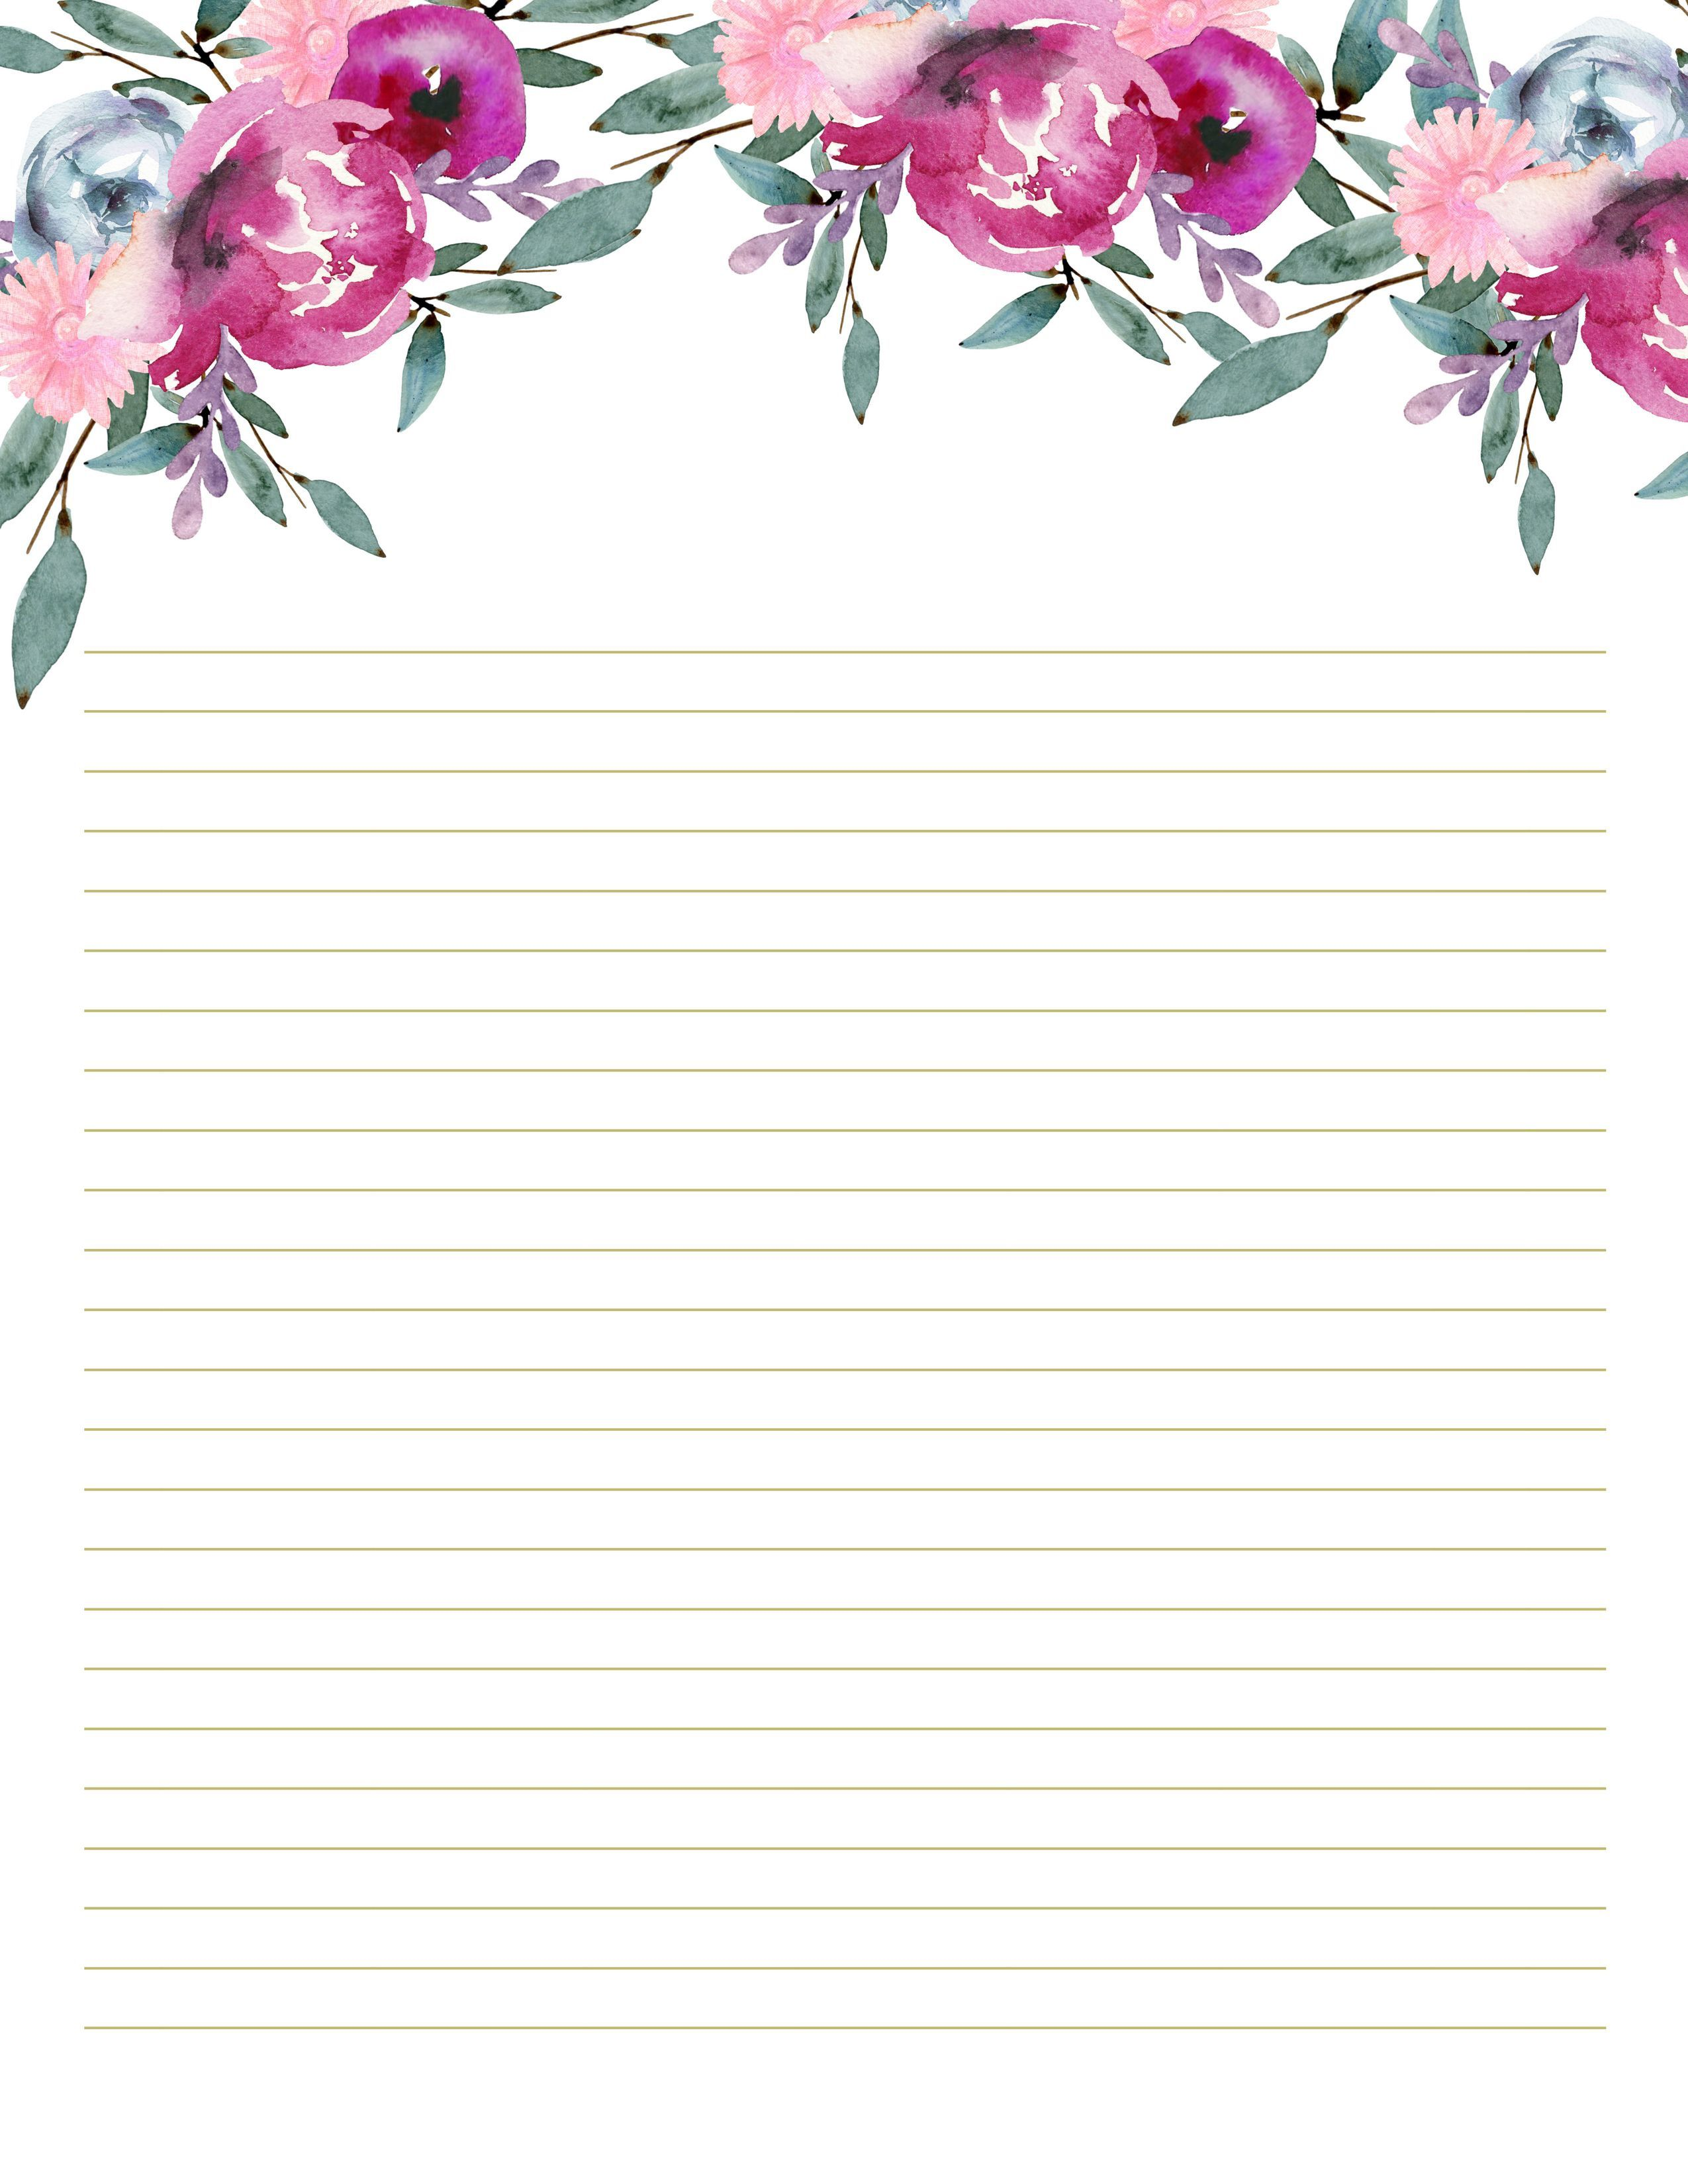 002 Unique Free Printable Stationery Paper Template High Resolution  TemplatesFull